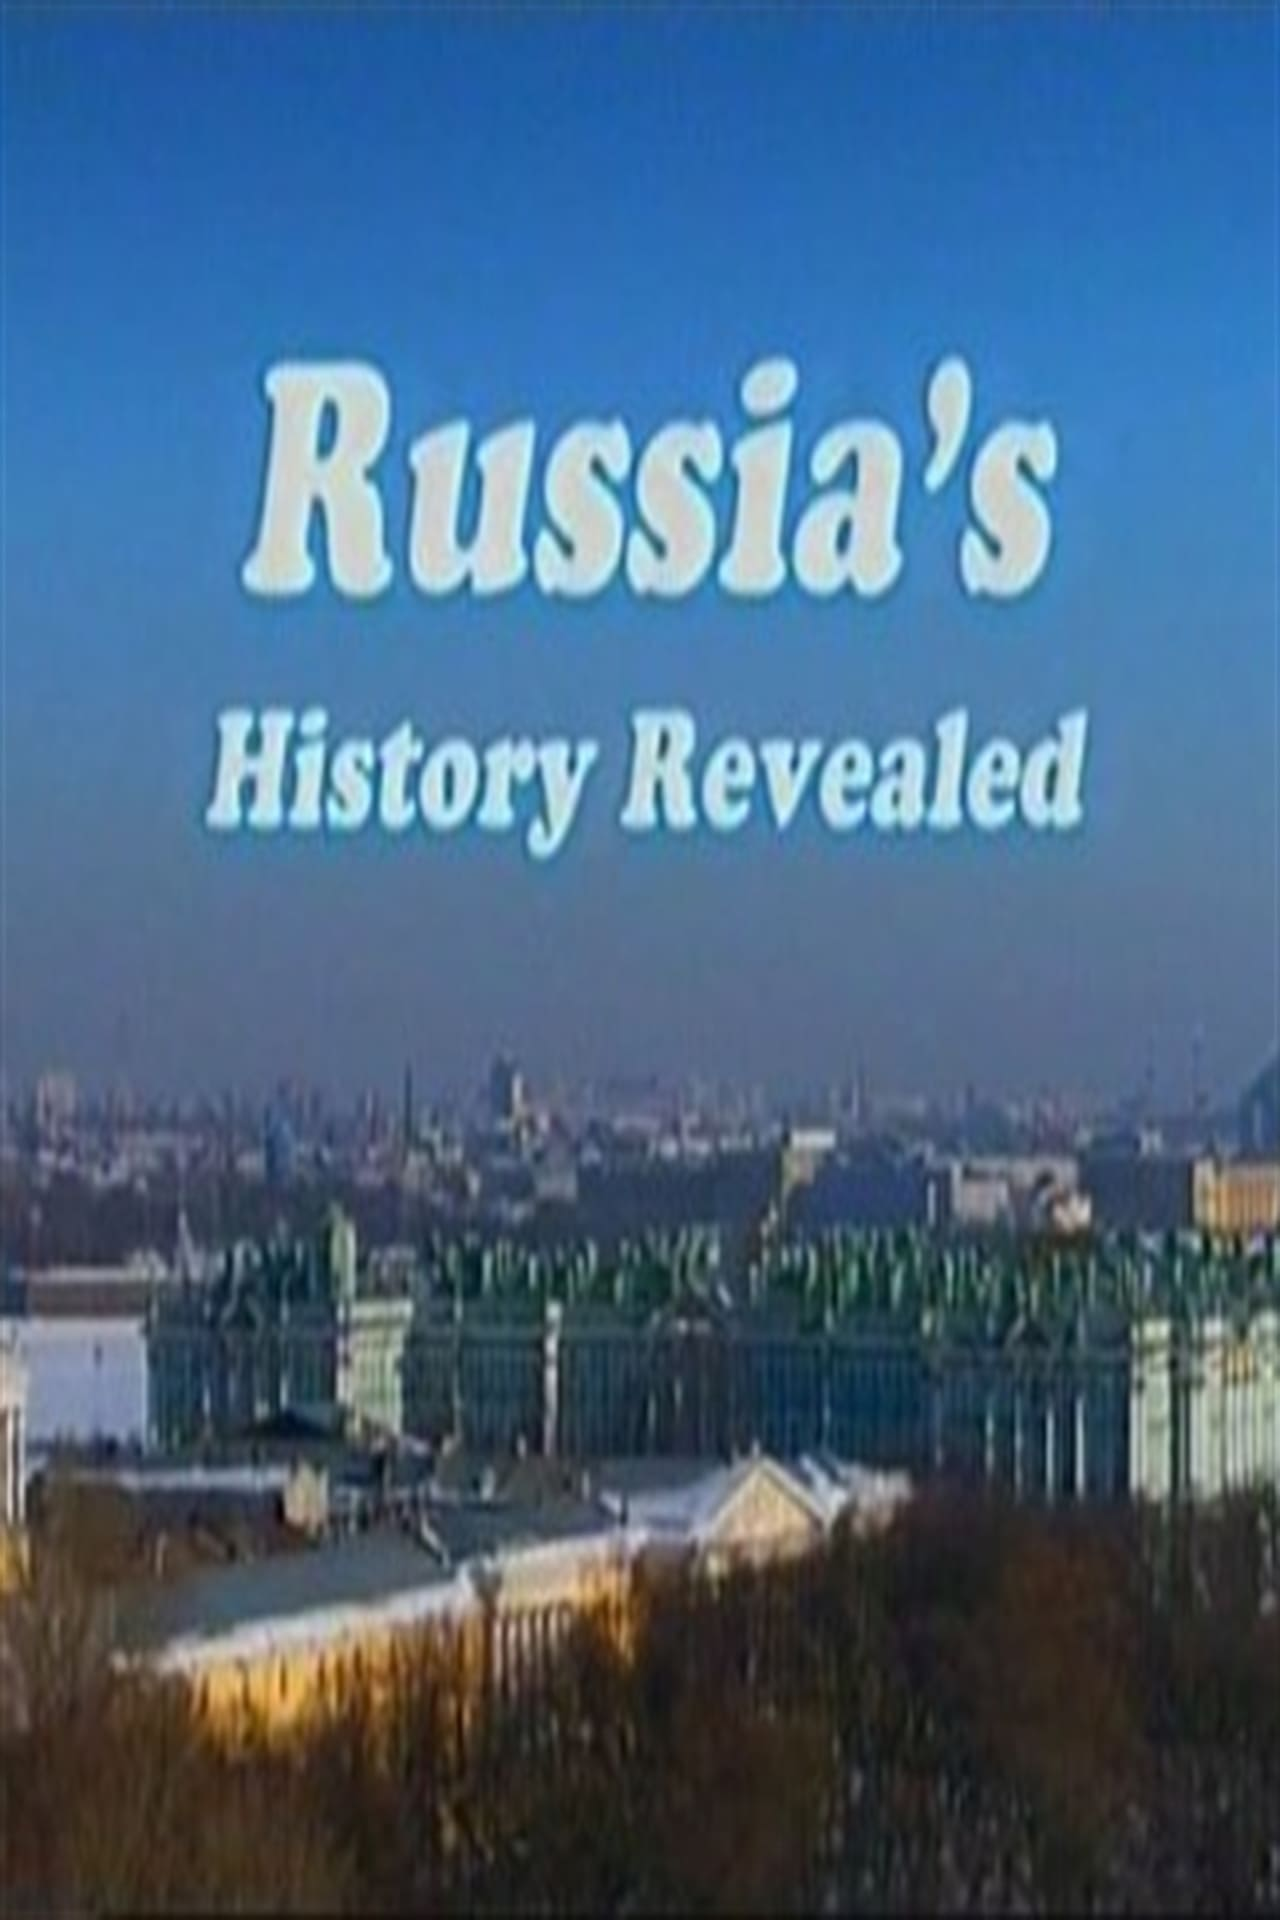 Russia's History Revealed (2013)